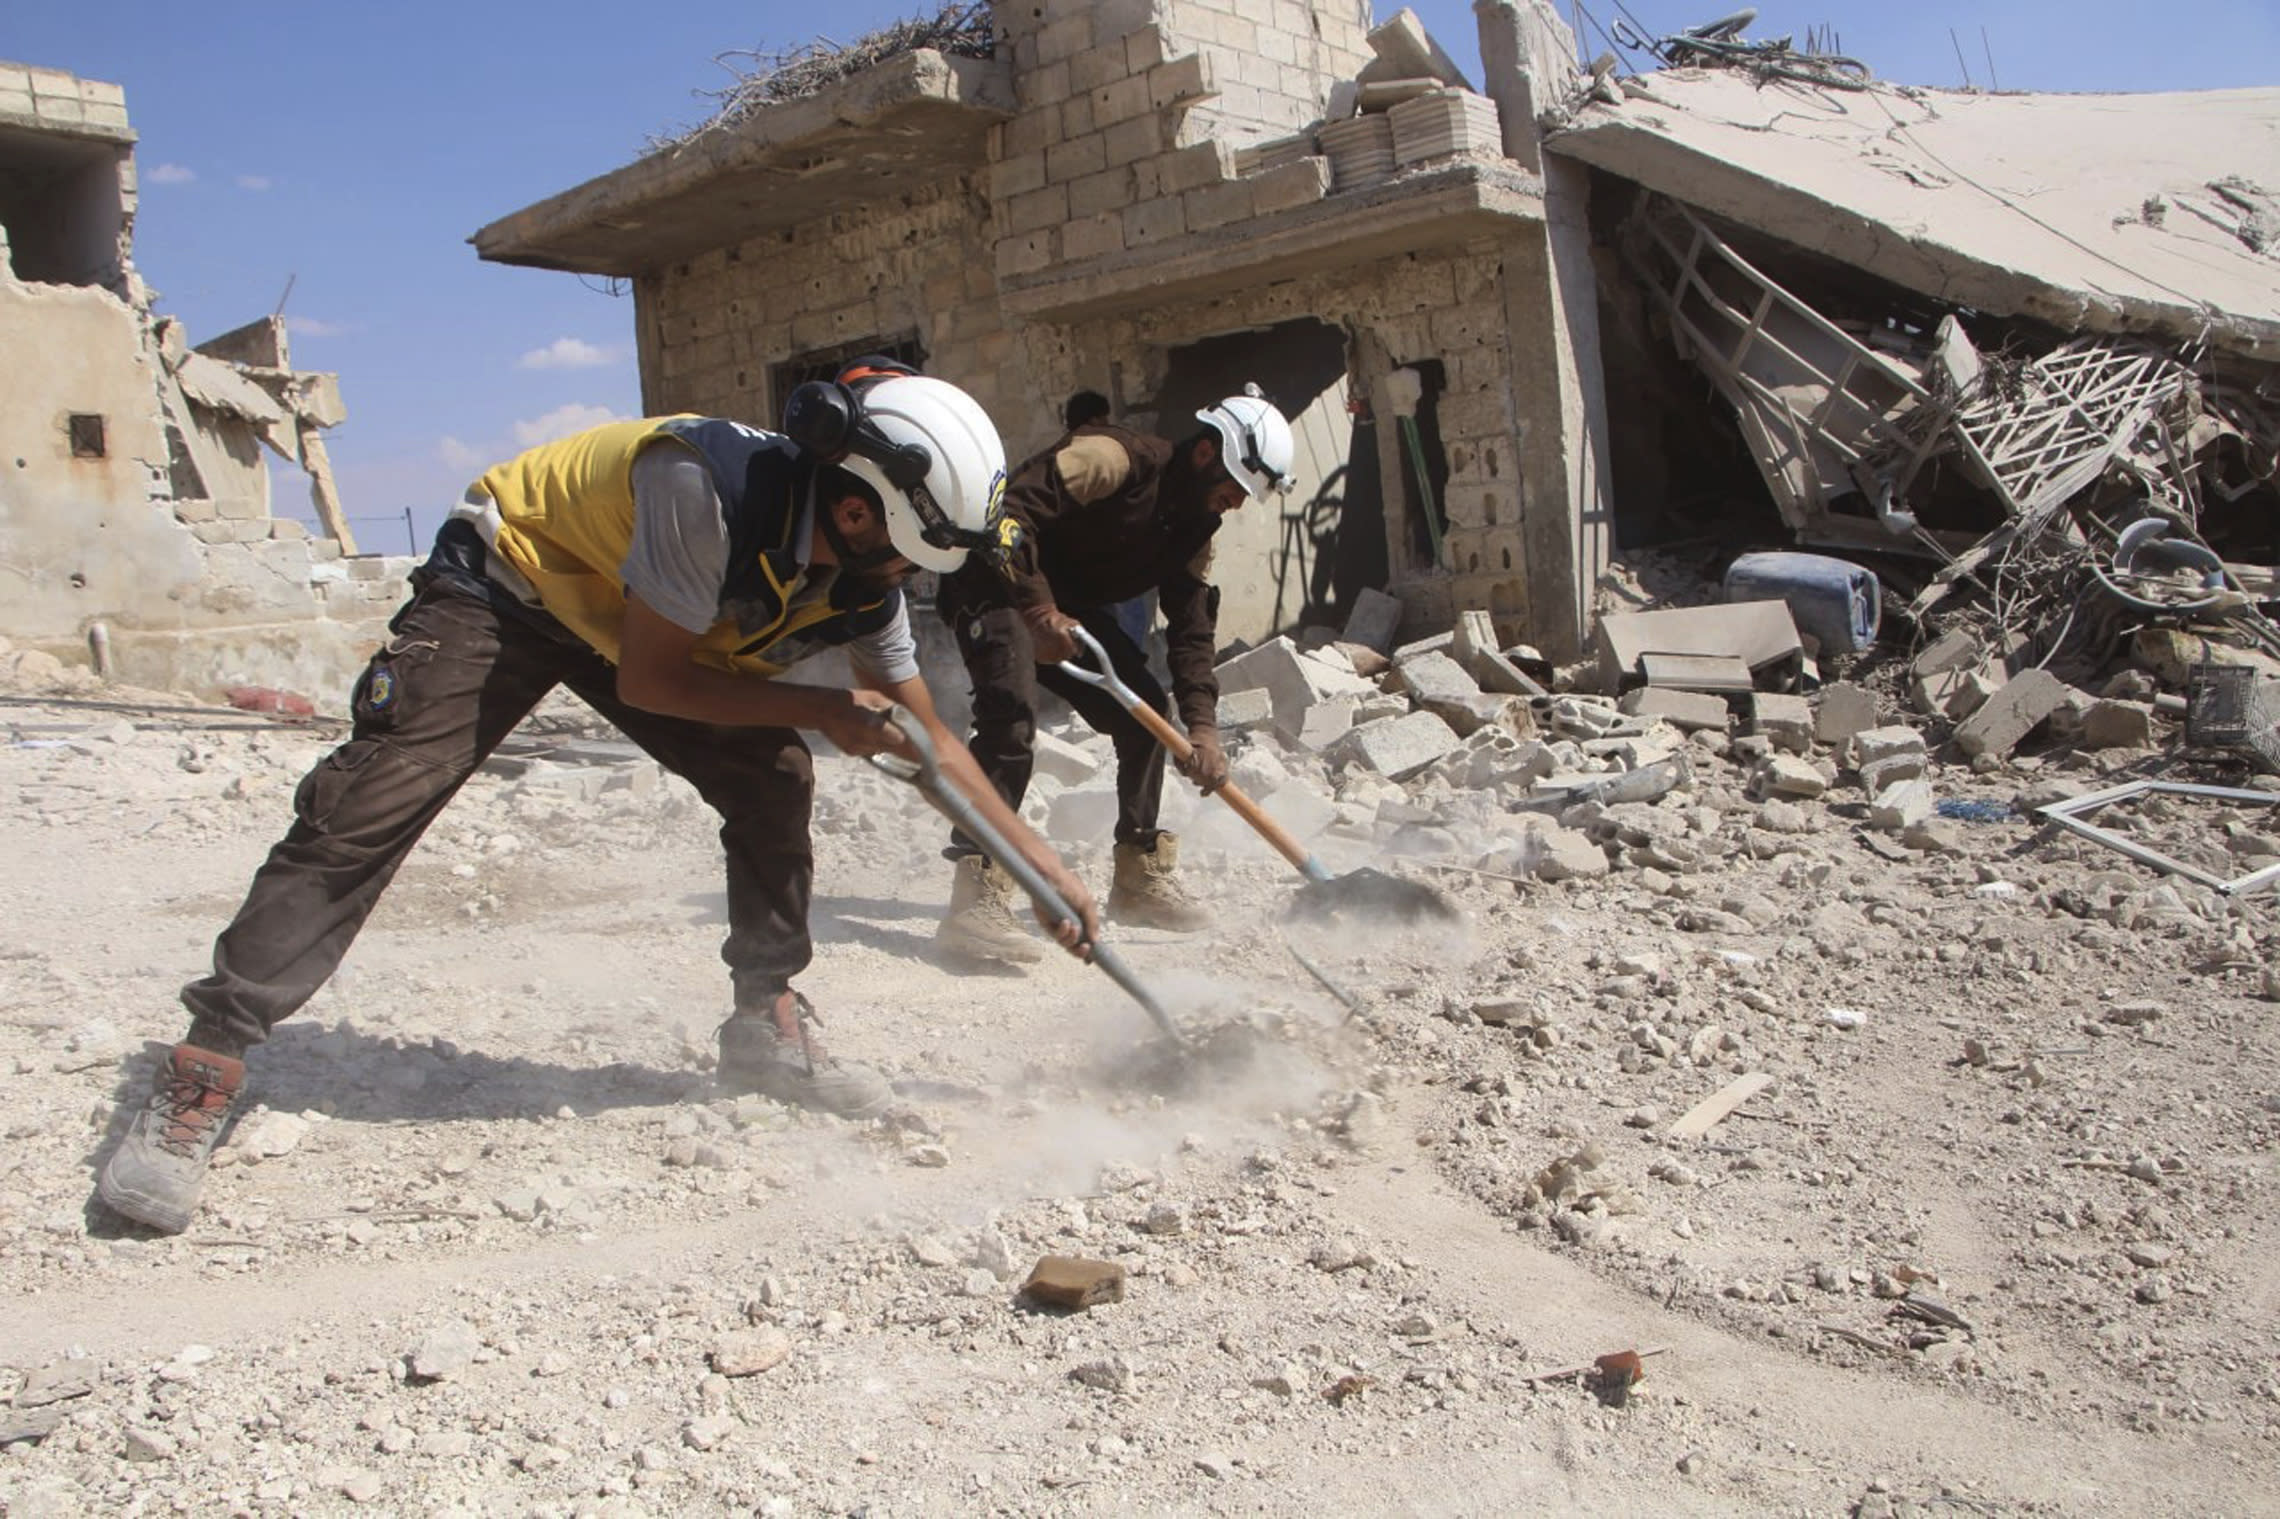 This photo released on Monday, Sept. 10, 2018 by the Syrian Civil Defense group known as the White Helmets, shows civil defense workers clean rubble from a house which was damaged by a Syrian government airstrike, in Hobeit village, near Idlib, Syria. High-level diplomats from Iran, Russia and Turkey were meeting Tuesday with the U.N. envoy for Syria about creating a committee to revise the war-battered country's constitution. Tuesday's talks in Geneva under U.N. envoy Staffan de Mistura come amid concerns he and other U.N. officials have expressed about a looming battle for Idlib. (Syrian Civil Defense White Helmets via AP) (Syrian Civil Defense White Helmets via AP)